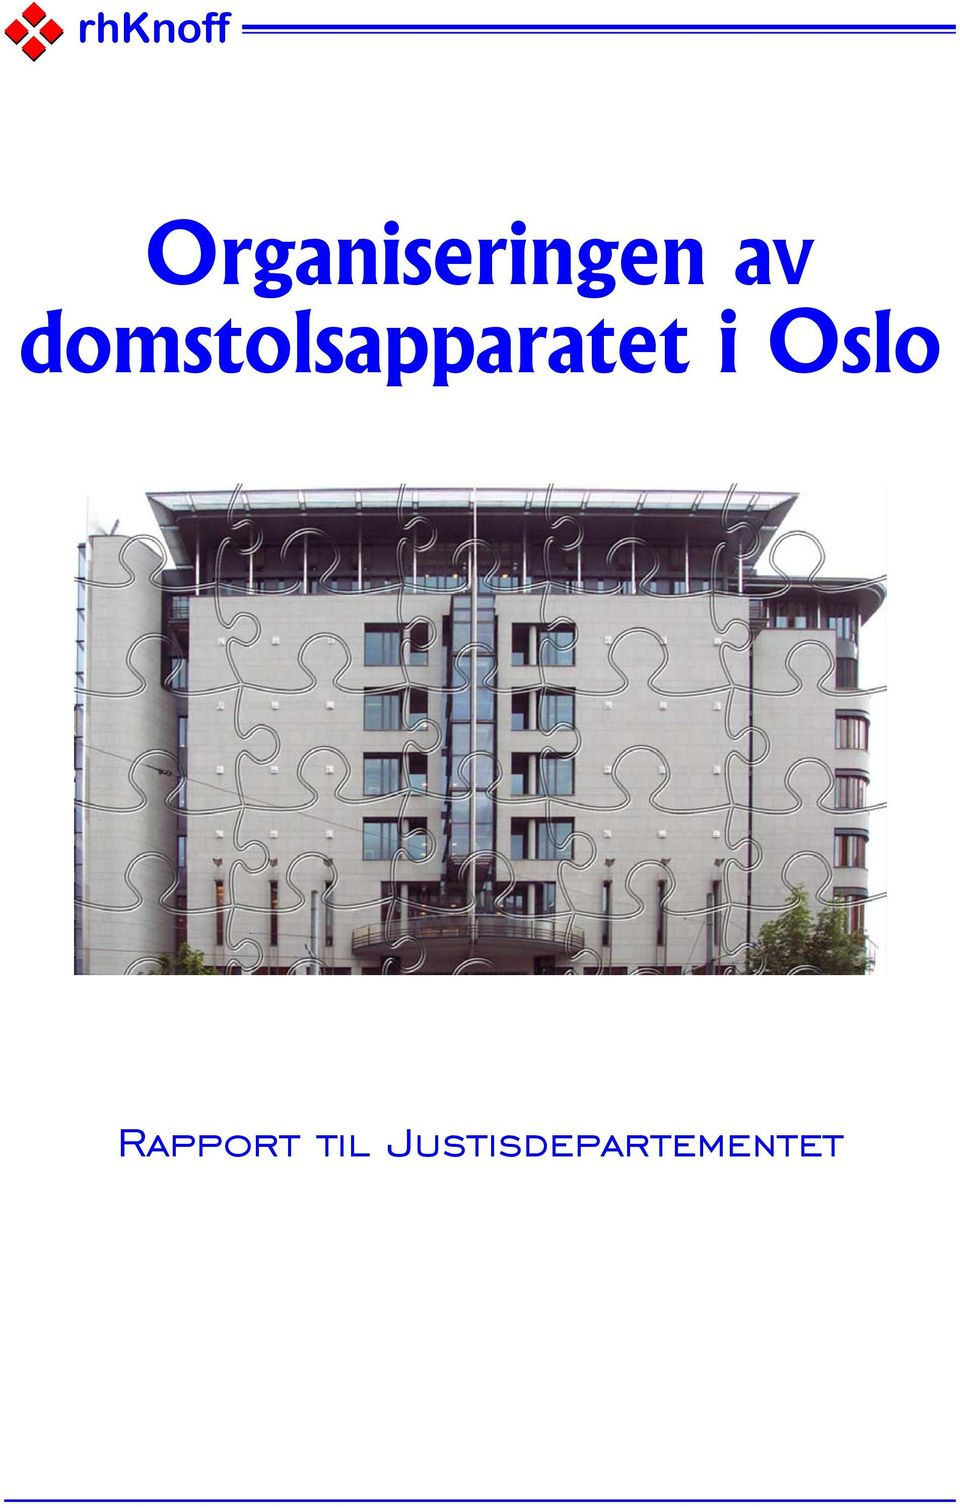 domstolsapparatet i